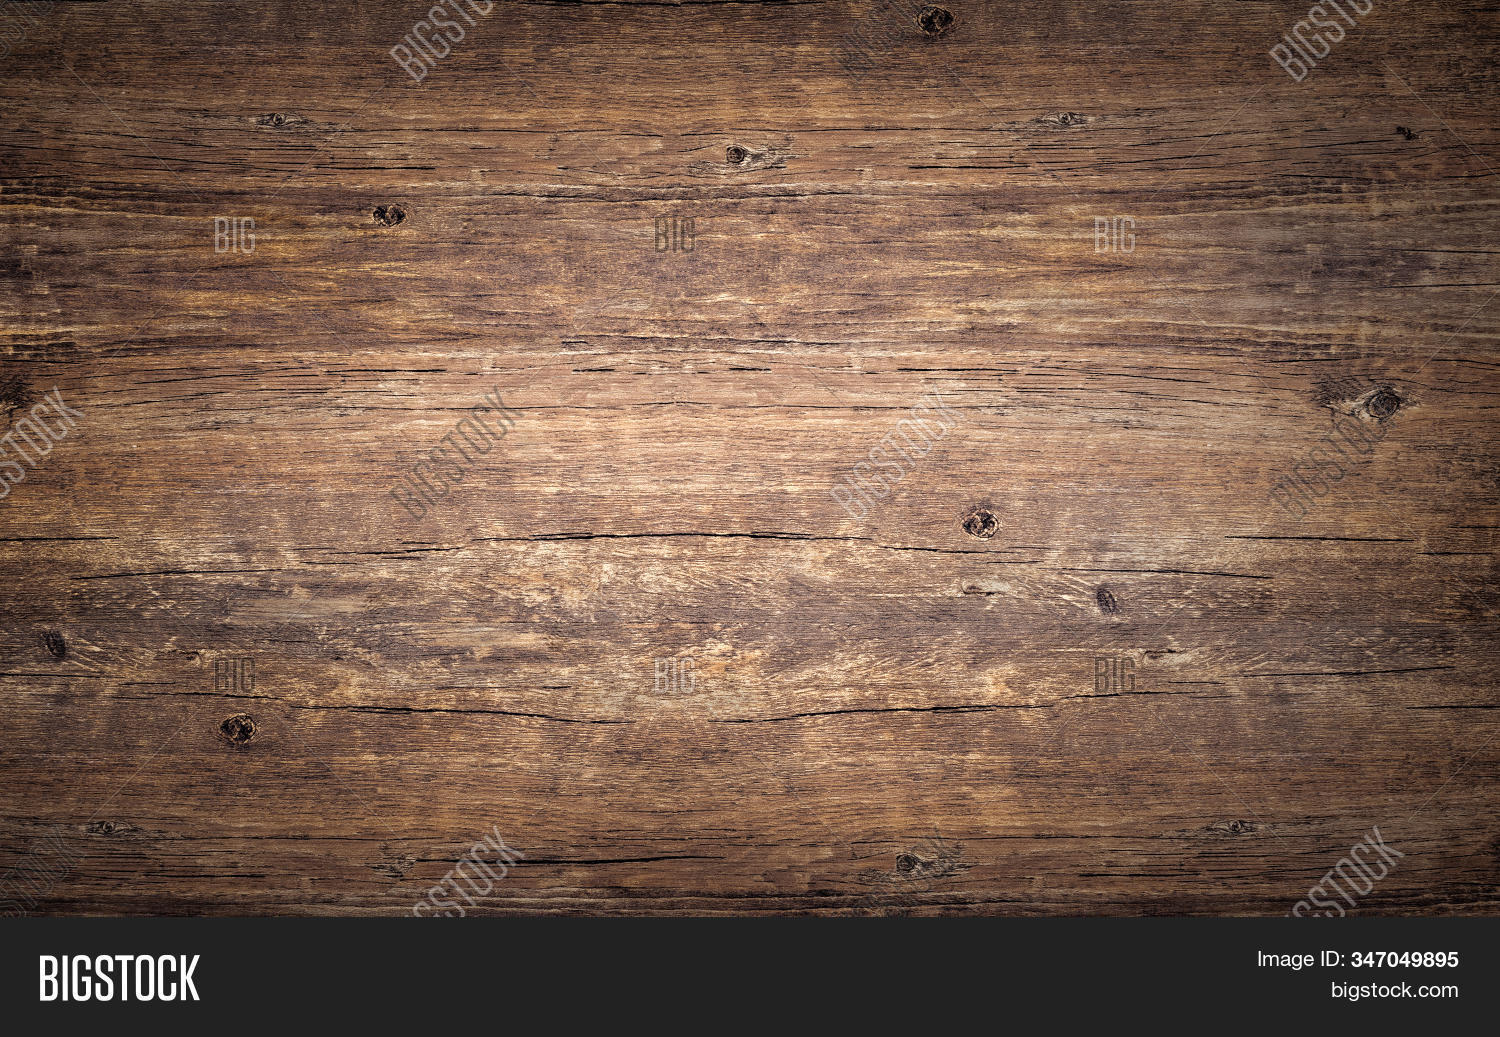 Wood Texture Background. Top View Of Vintage Wooden Table With Cracks. Brown Rustic Rough Timber For